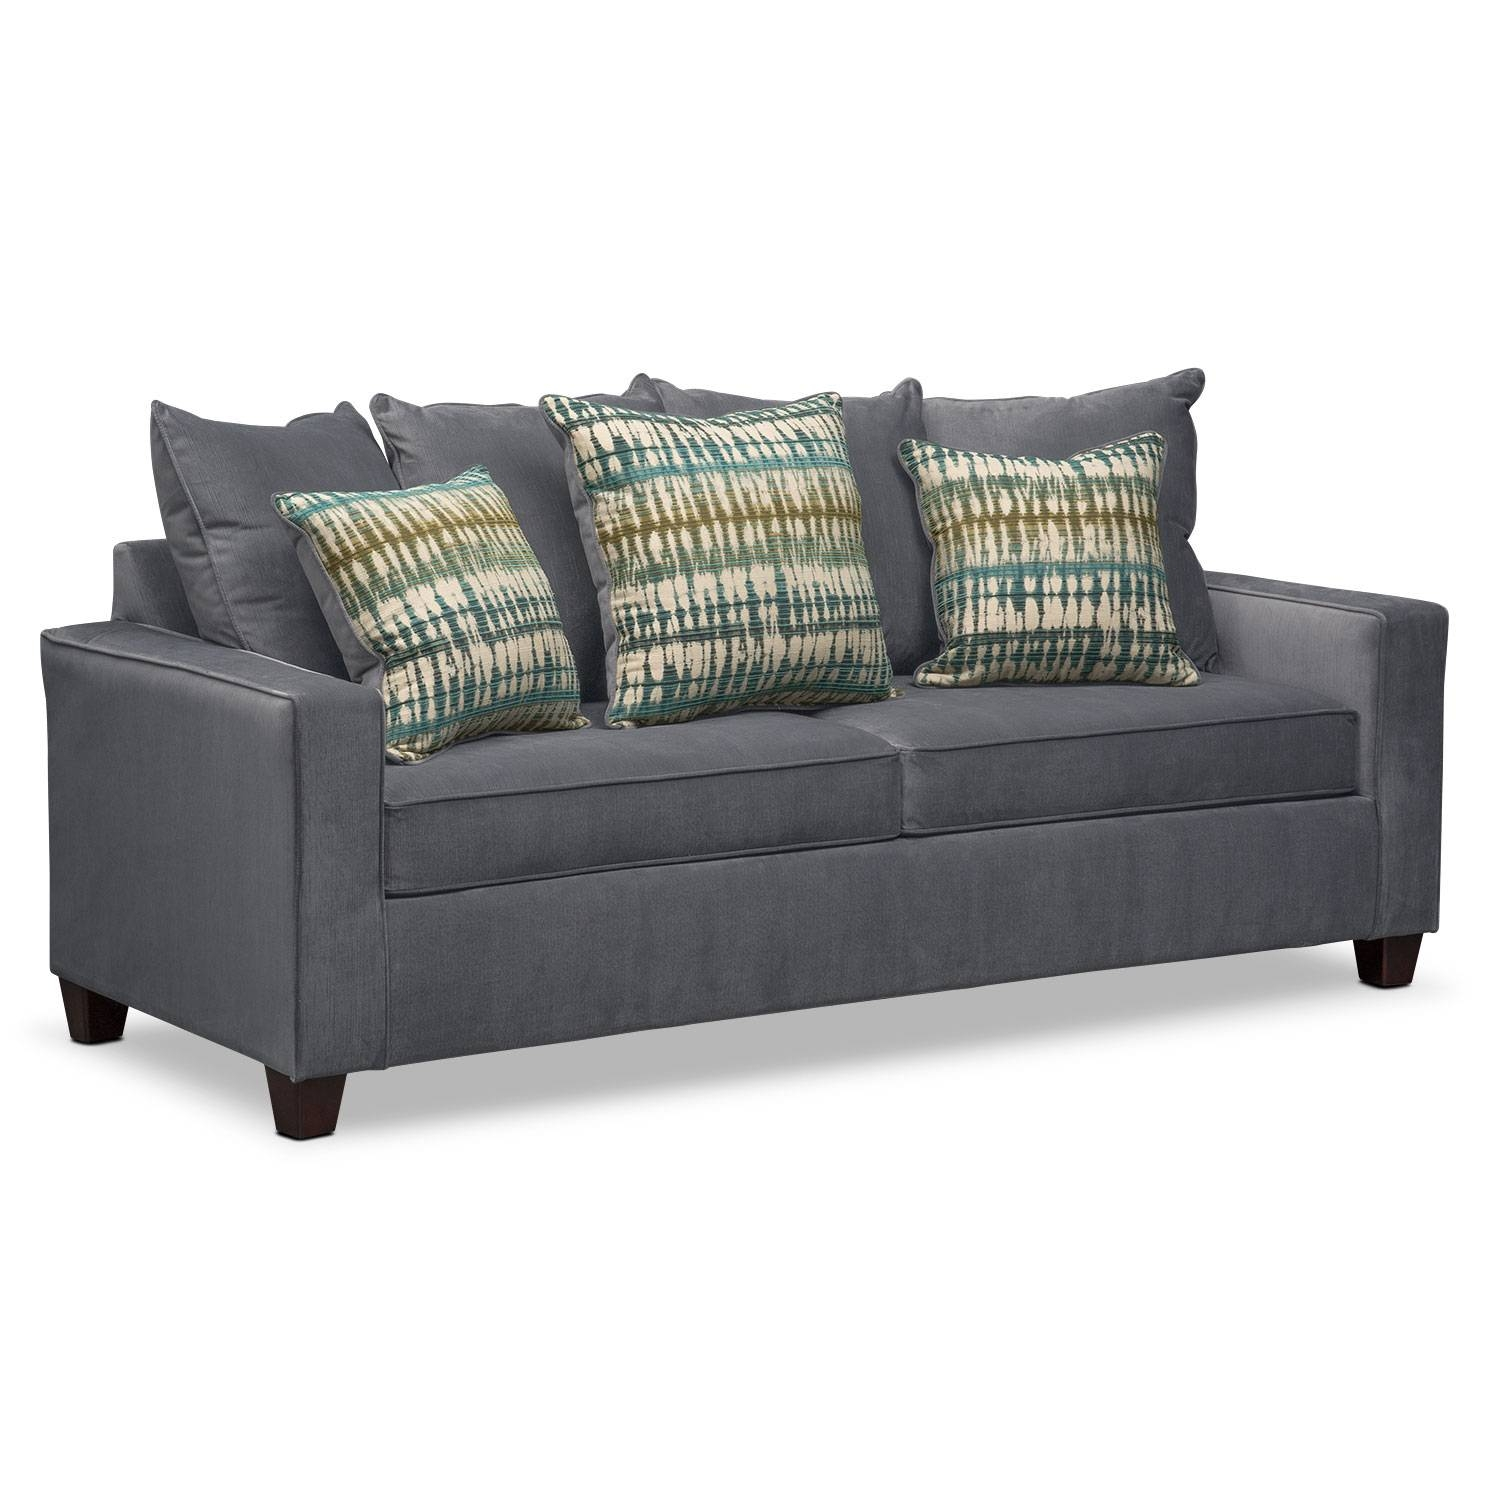 Bryden Sofa – Slate | Value City Furniture Inside City Sofa Beds (View 1 of 30)